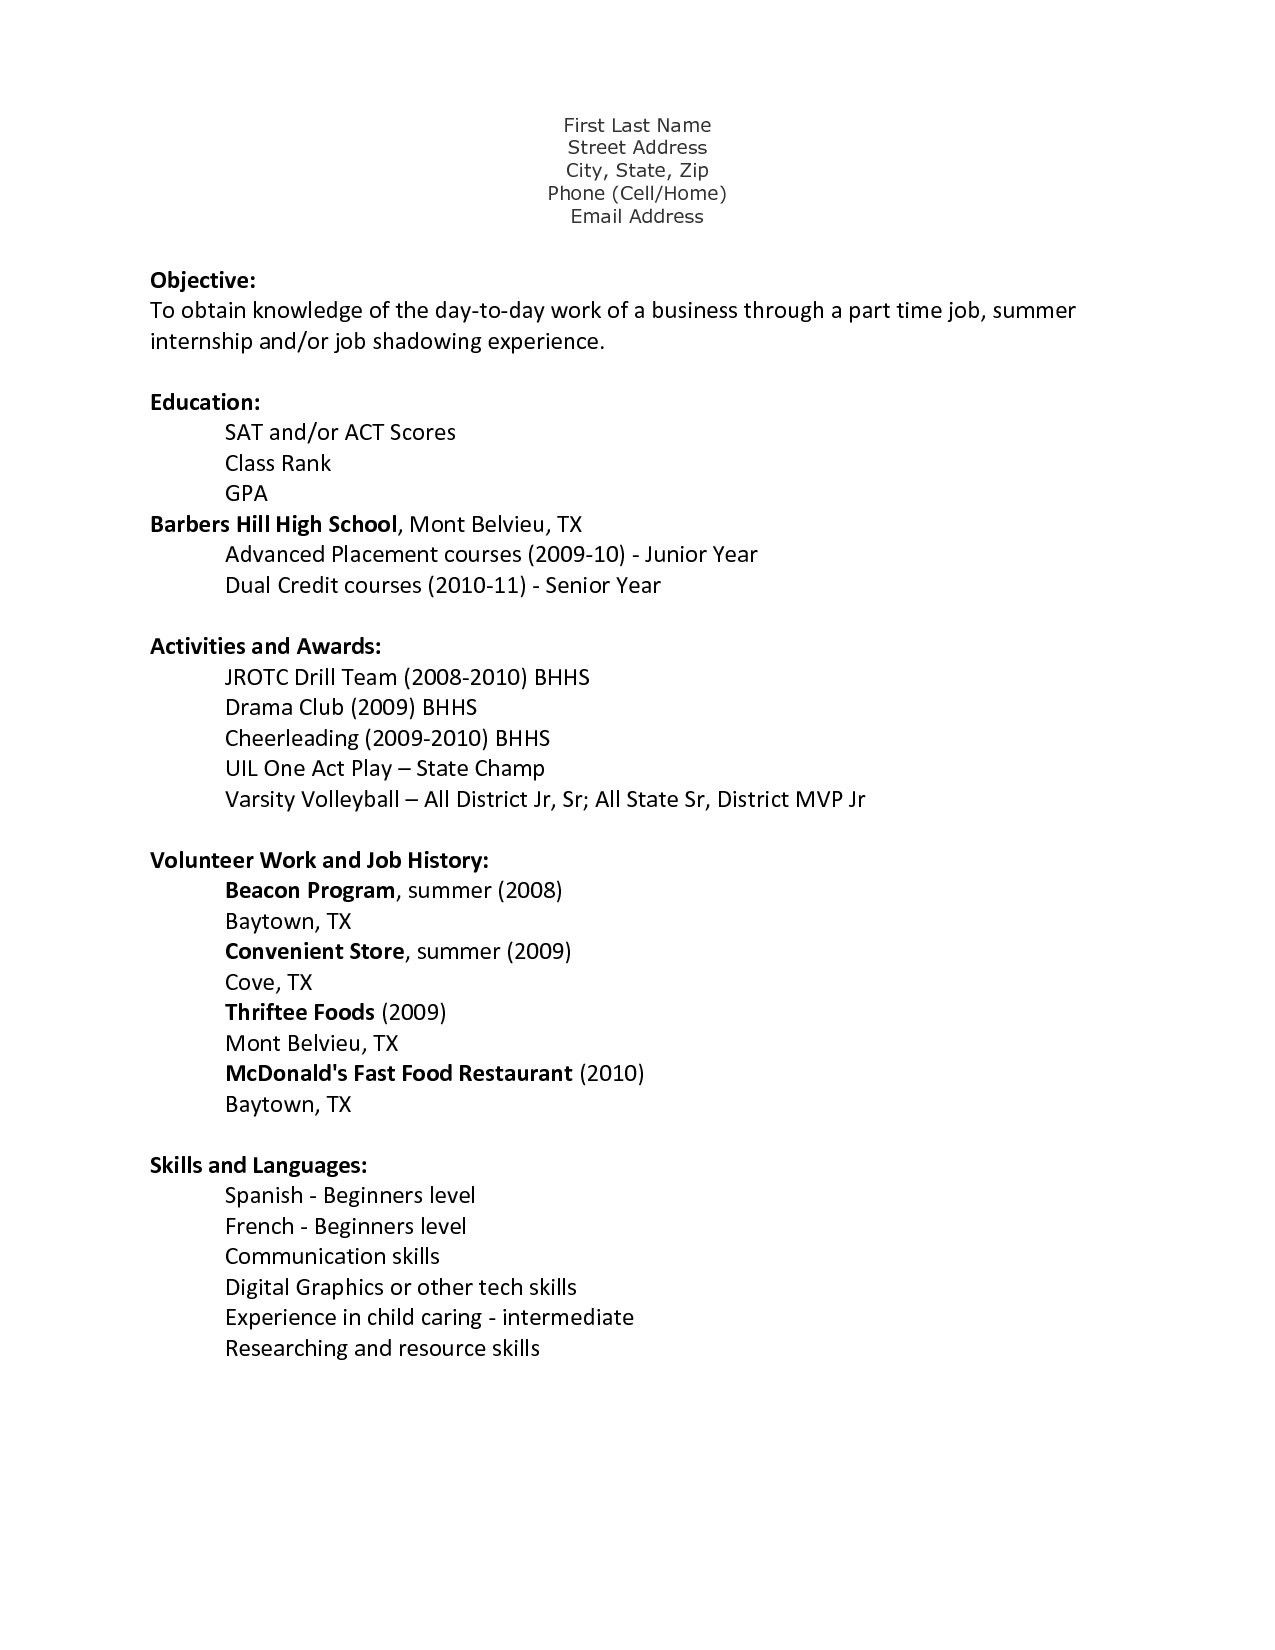 Pin On Resume For Teens